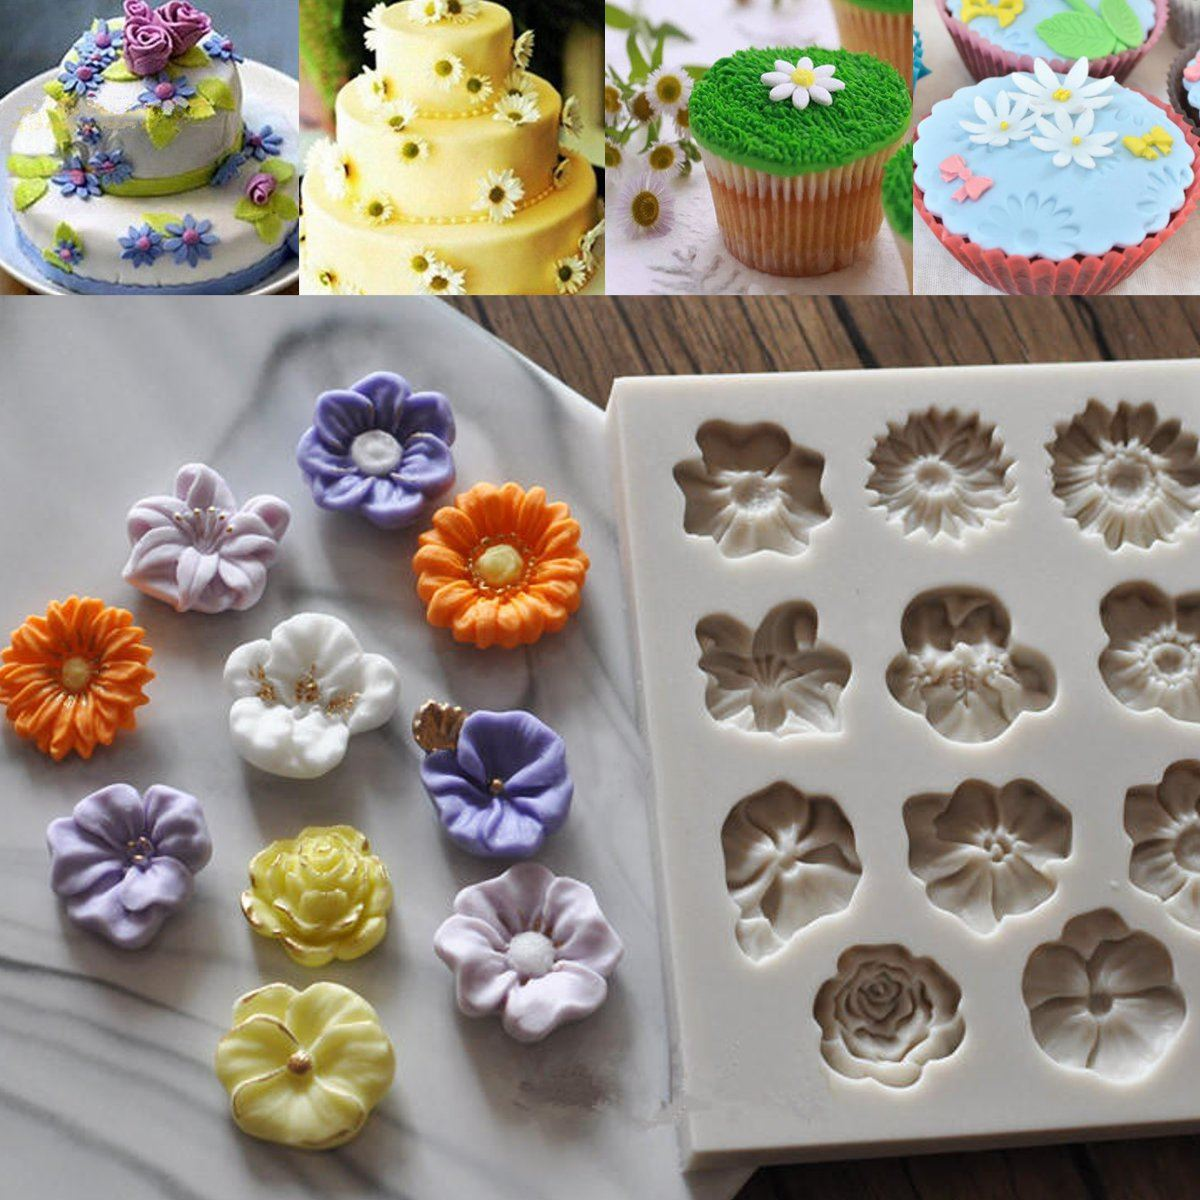 Aliexpress buy new diy daisy rose flowers cake chocolate mold aliexpress buy new diy daisy rose flowers cake chocolate mold silicone candy jely pudding mold sugar fondant baking decorating tools bakeware from izmirmasajfo